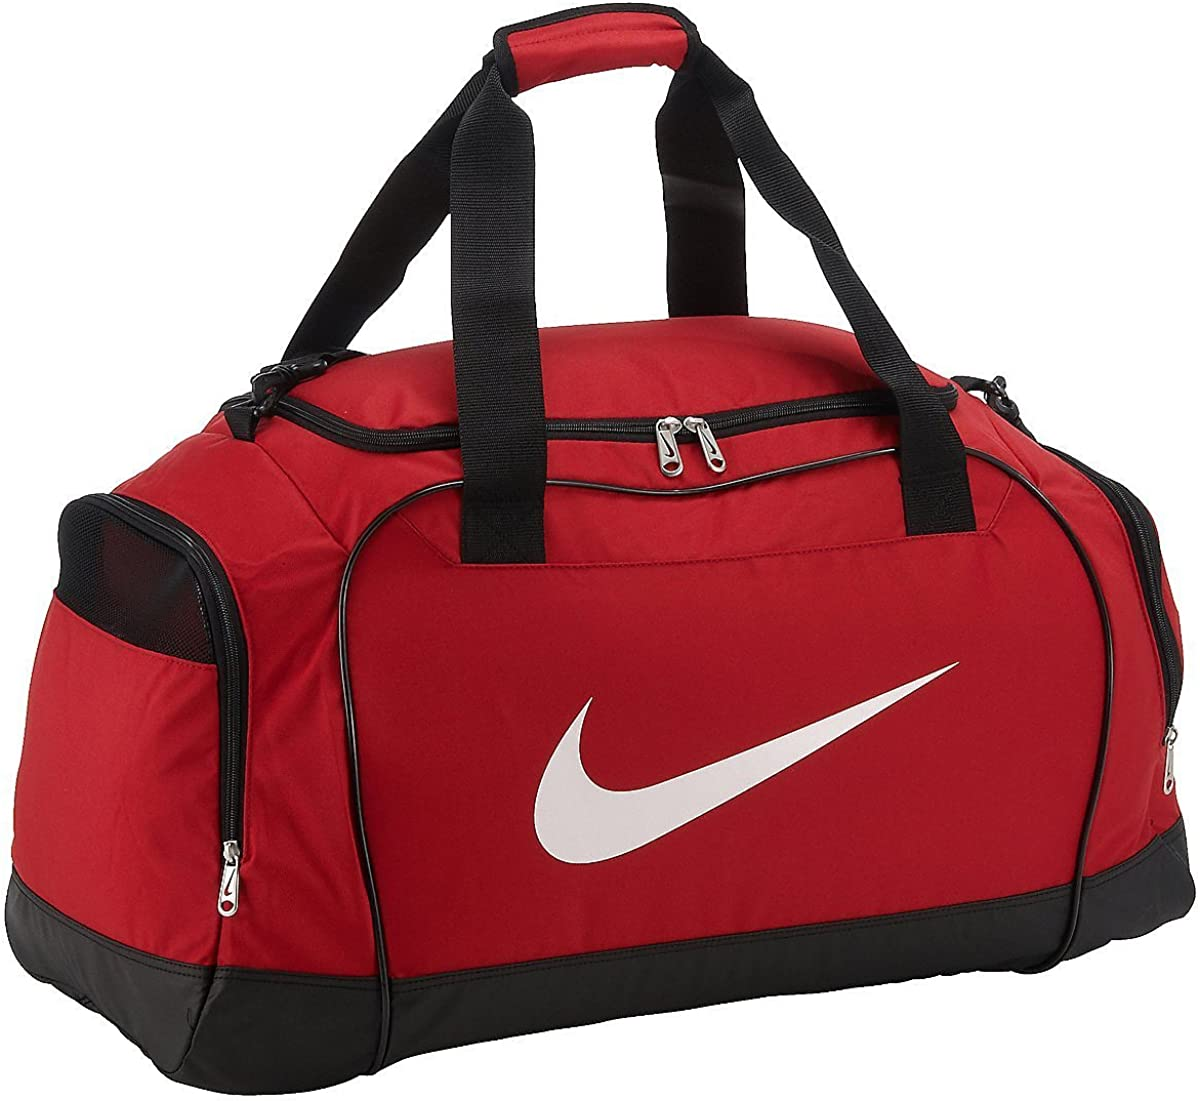 Nike Club Team - Bolsa de deporte, color rojo/negro / blanco - S ...